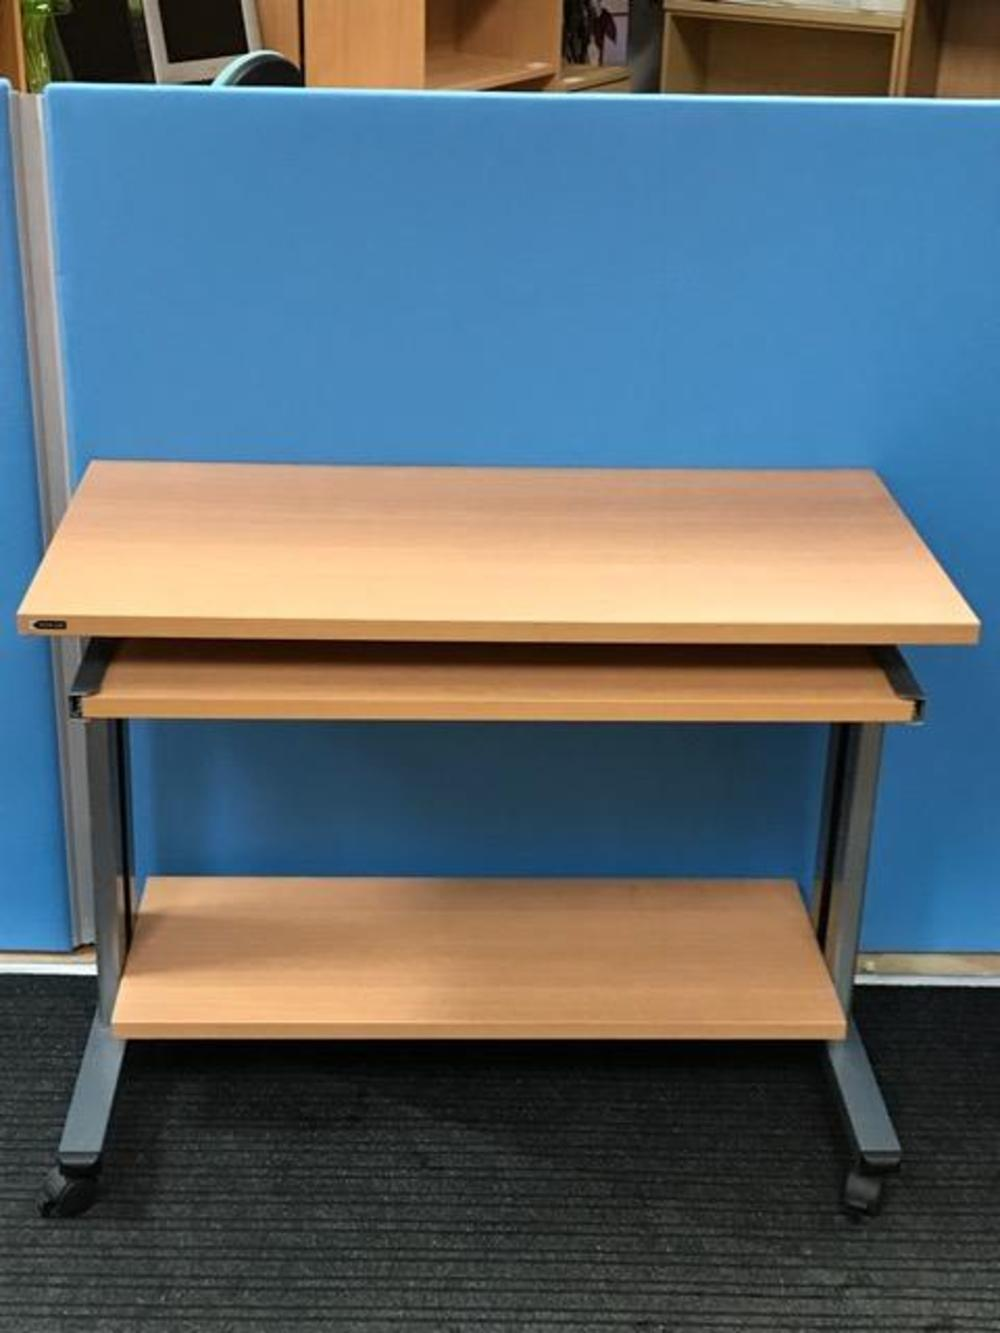 Smead Computer Desk with Pull Out Keyboard Shelf | SOS Office Supplies